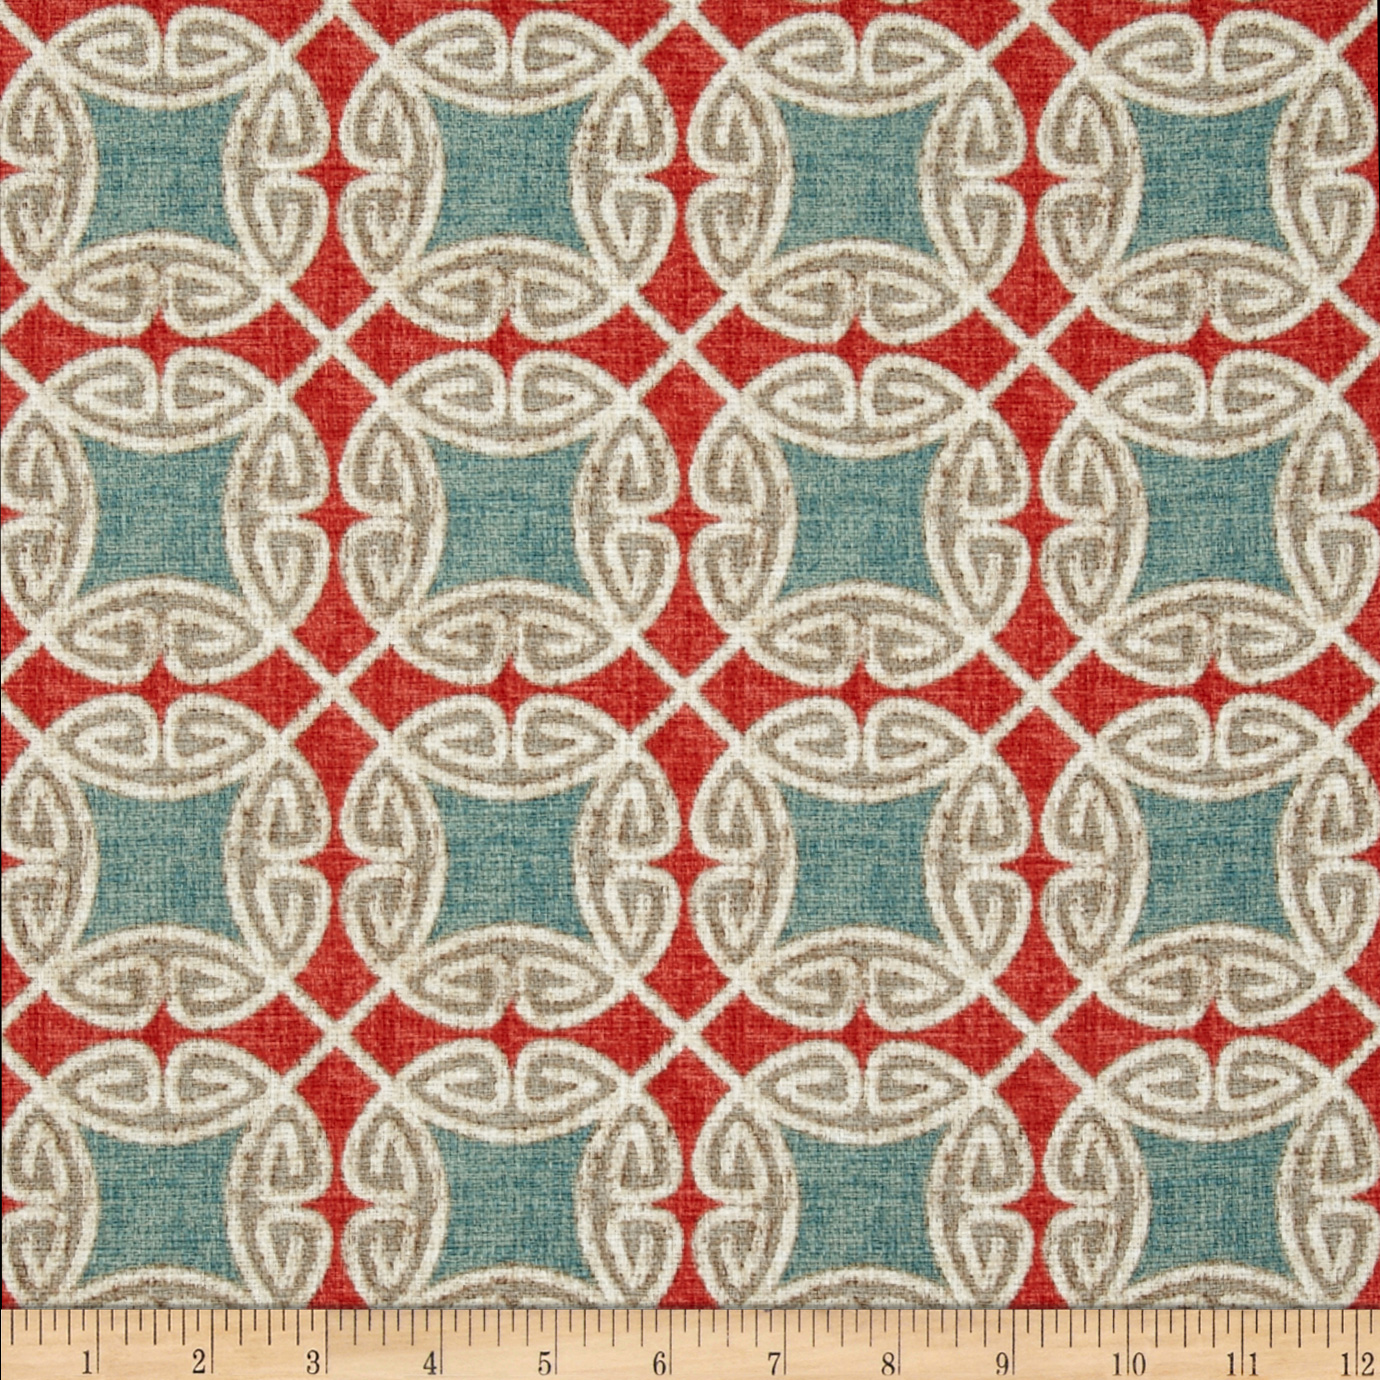 Swavelle/Mill Creek Ferro Chili Pepper Fabric